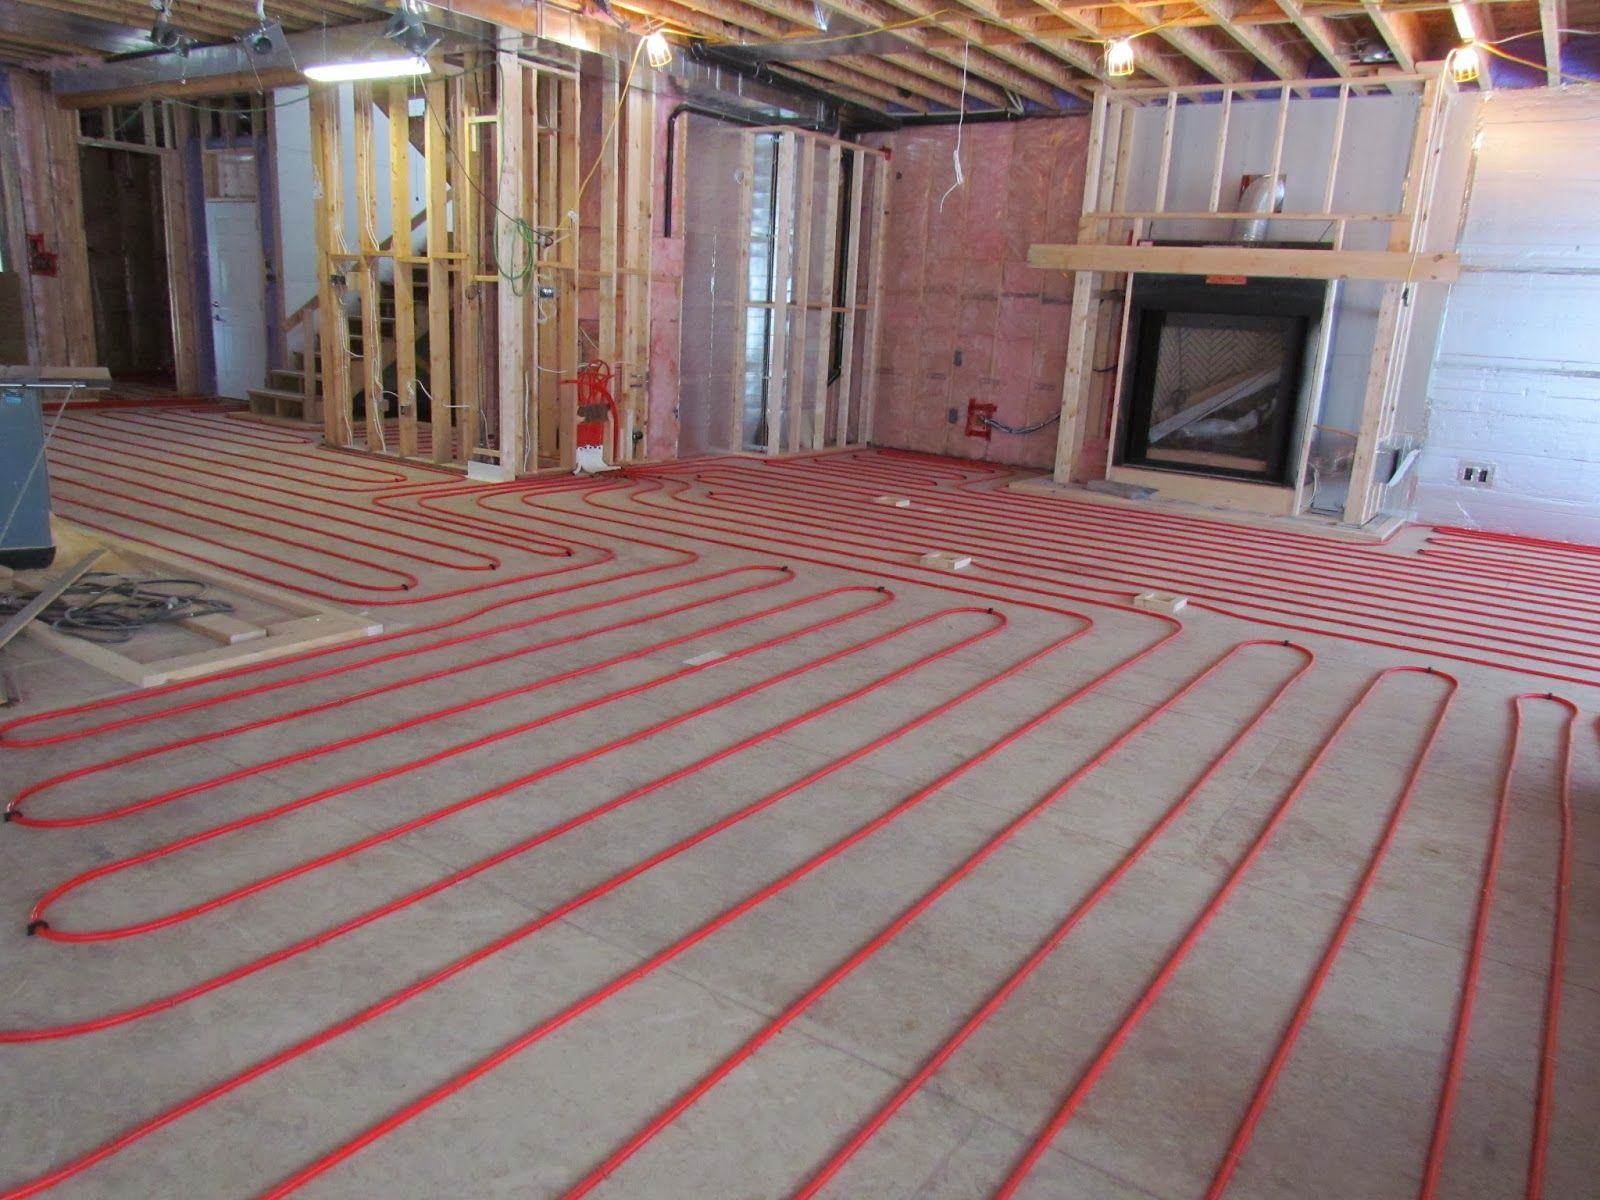 Heated Tile Floor In Basement With Innovative Floor Heating Cable Ideas~  Popular Home Interior Decoration